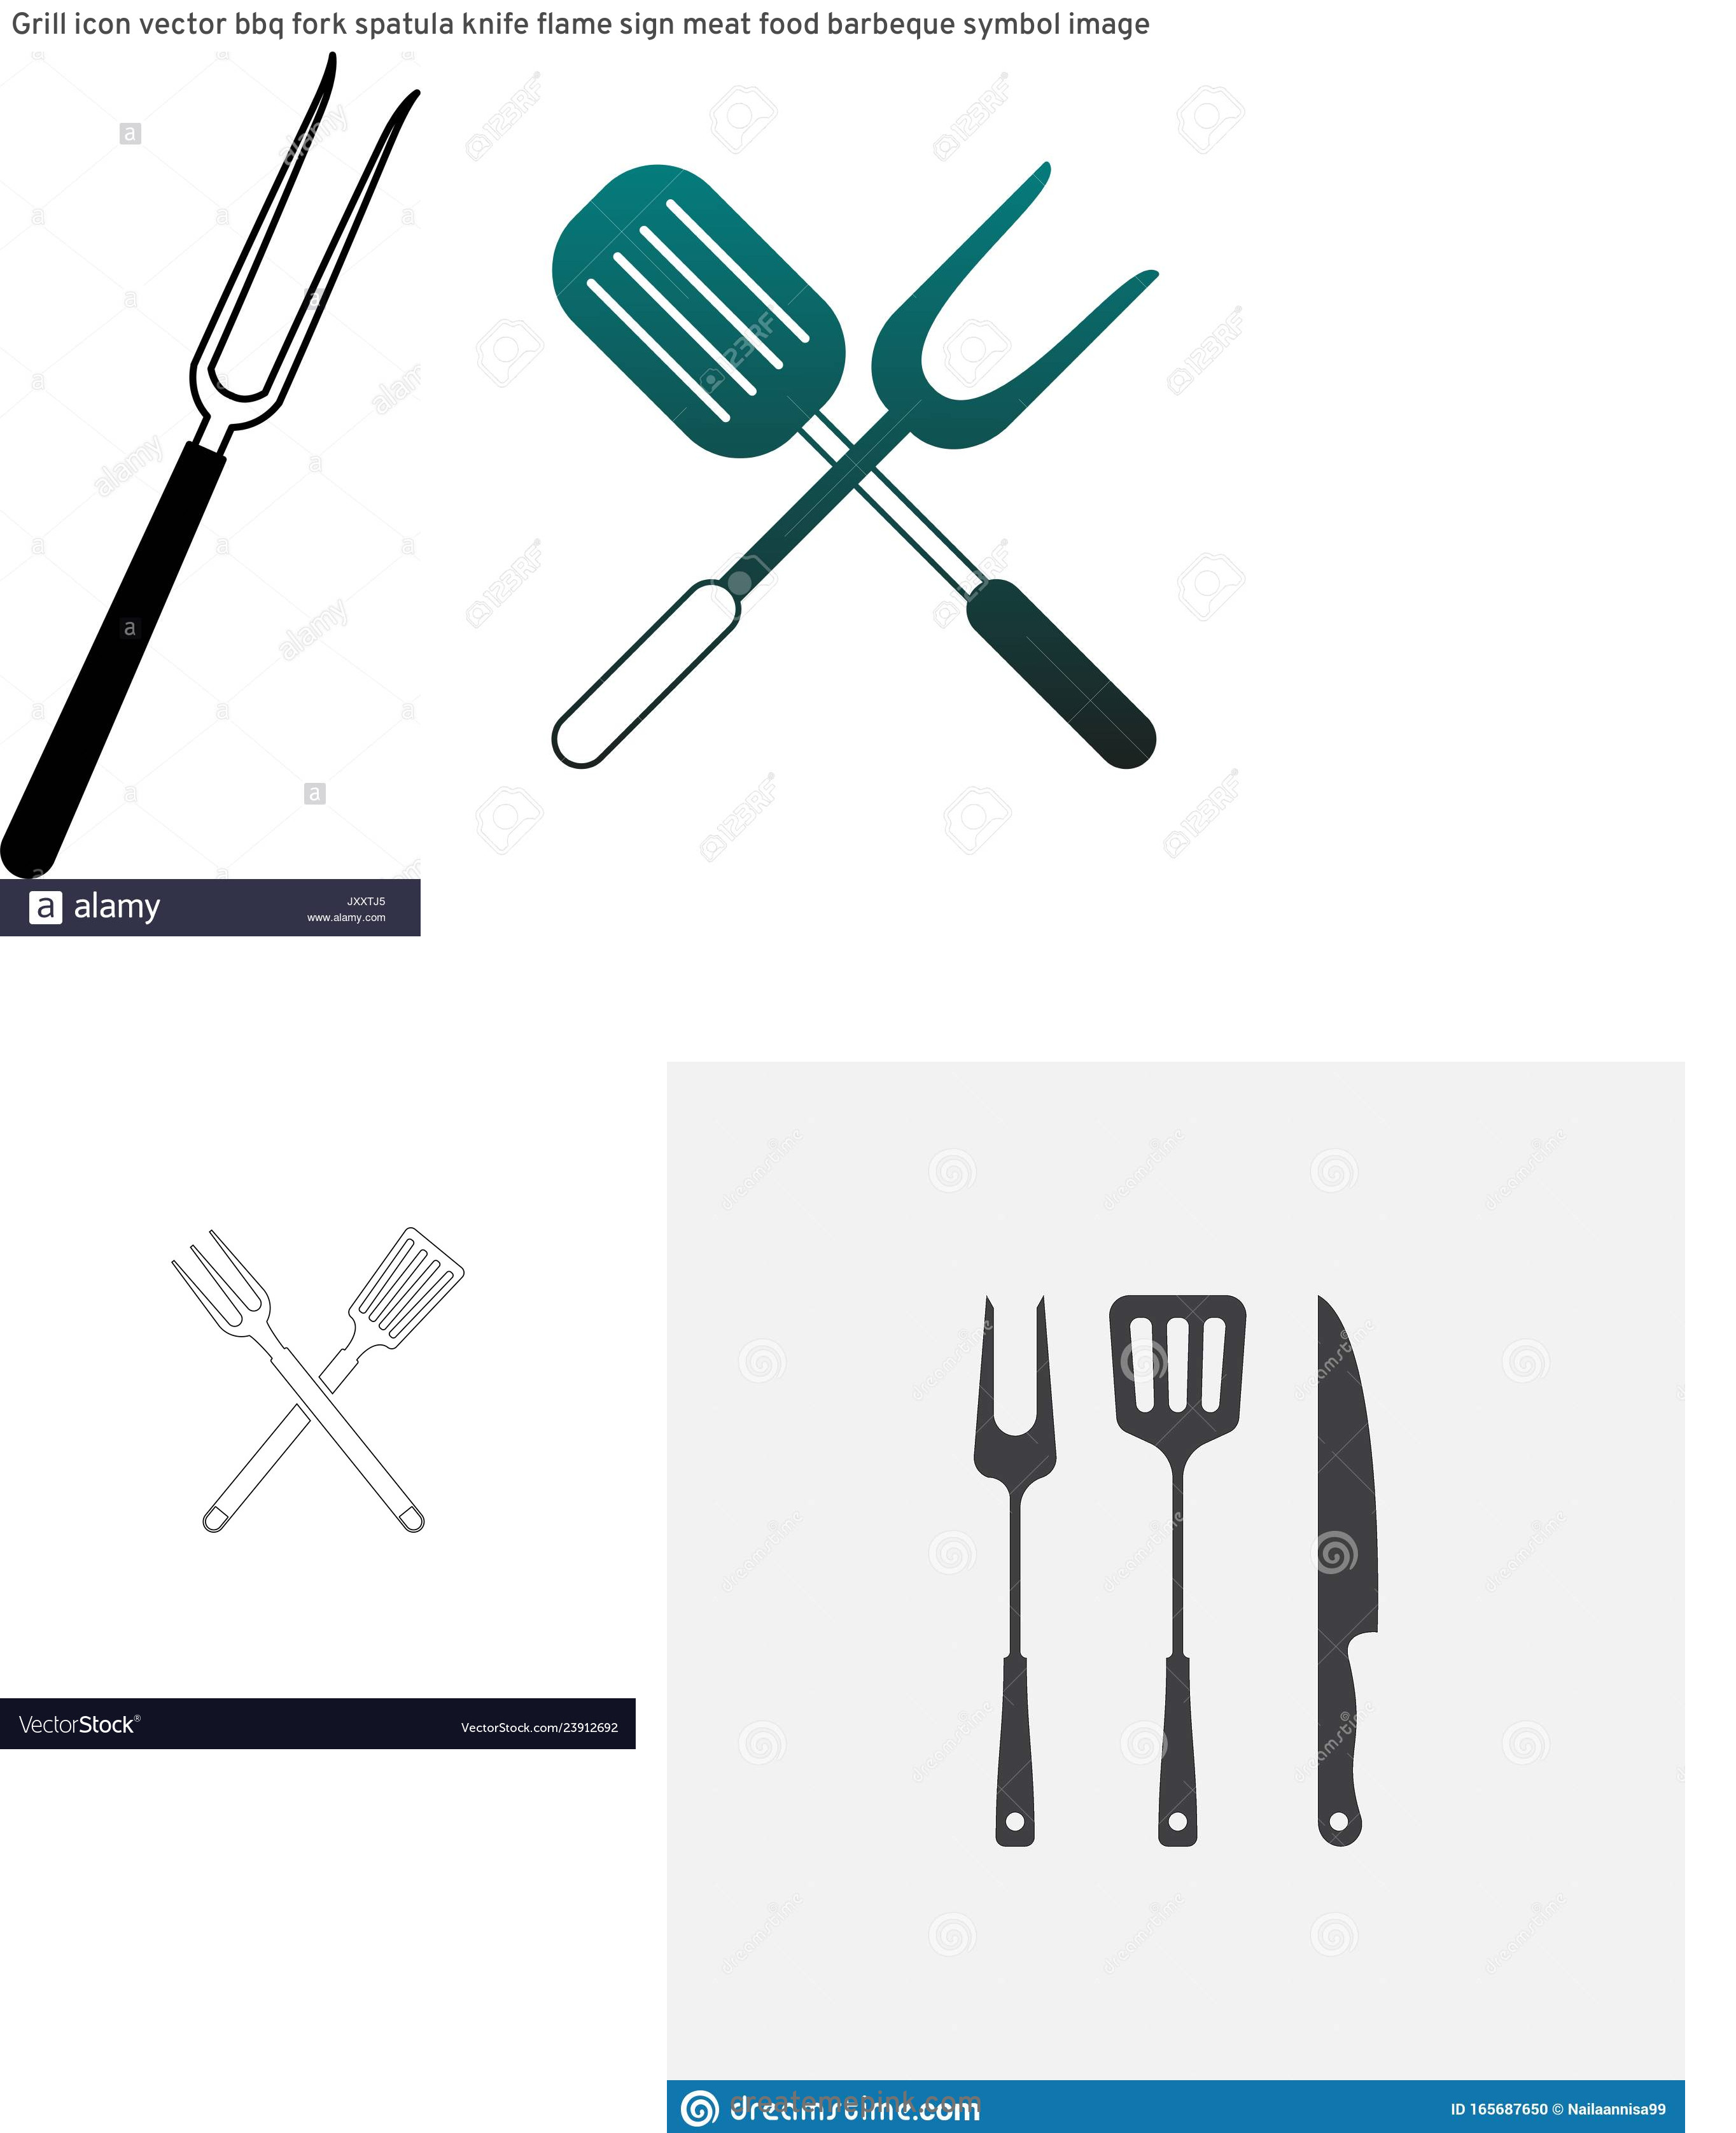 BBQ Fork Vector: Grill Icon Vector Bbq Fork Spatula Knife Flame Sign Meat Food Barbeque Symbol Image